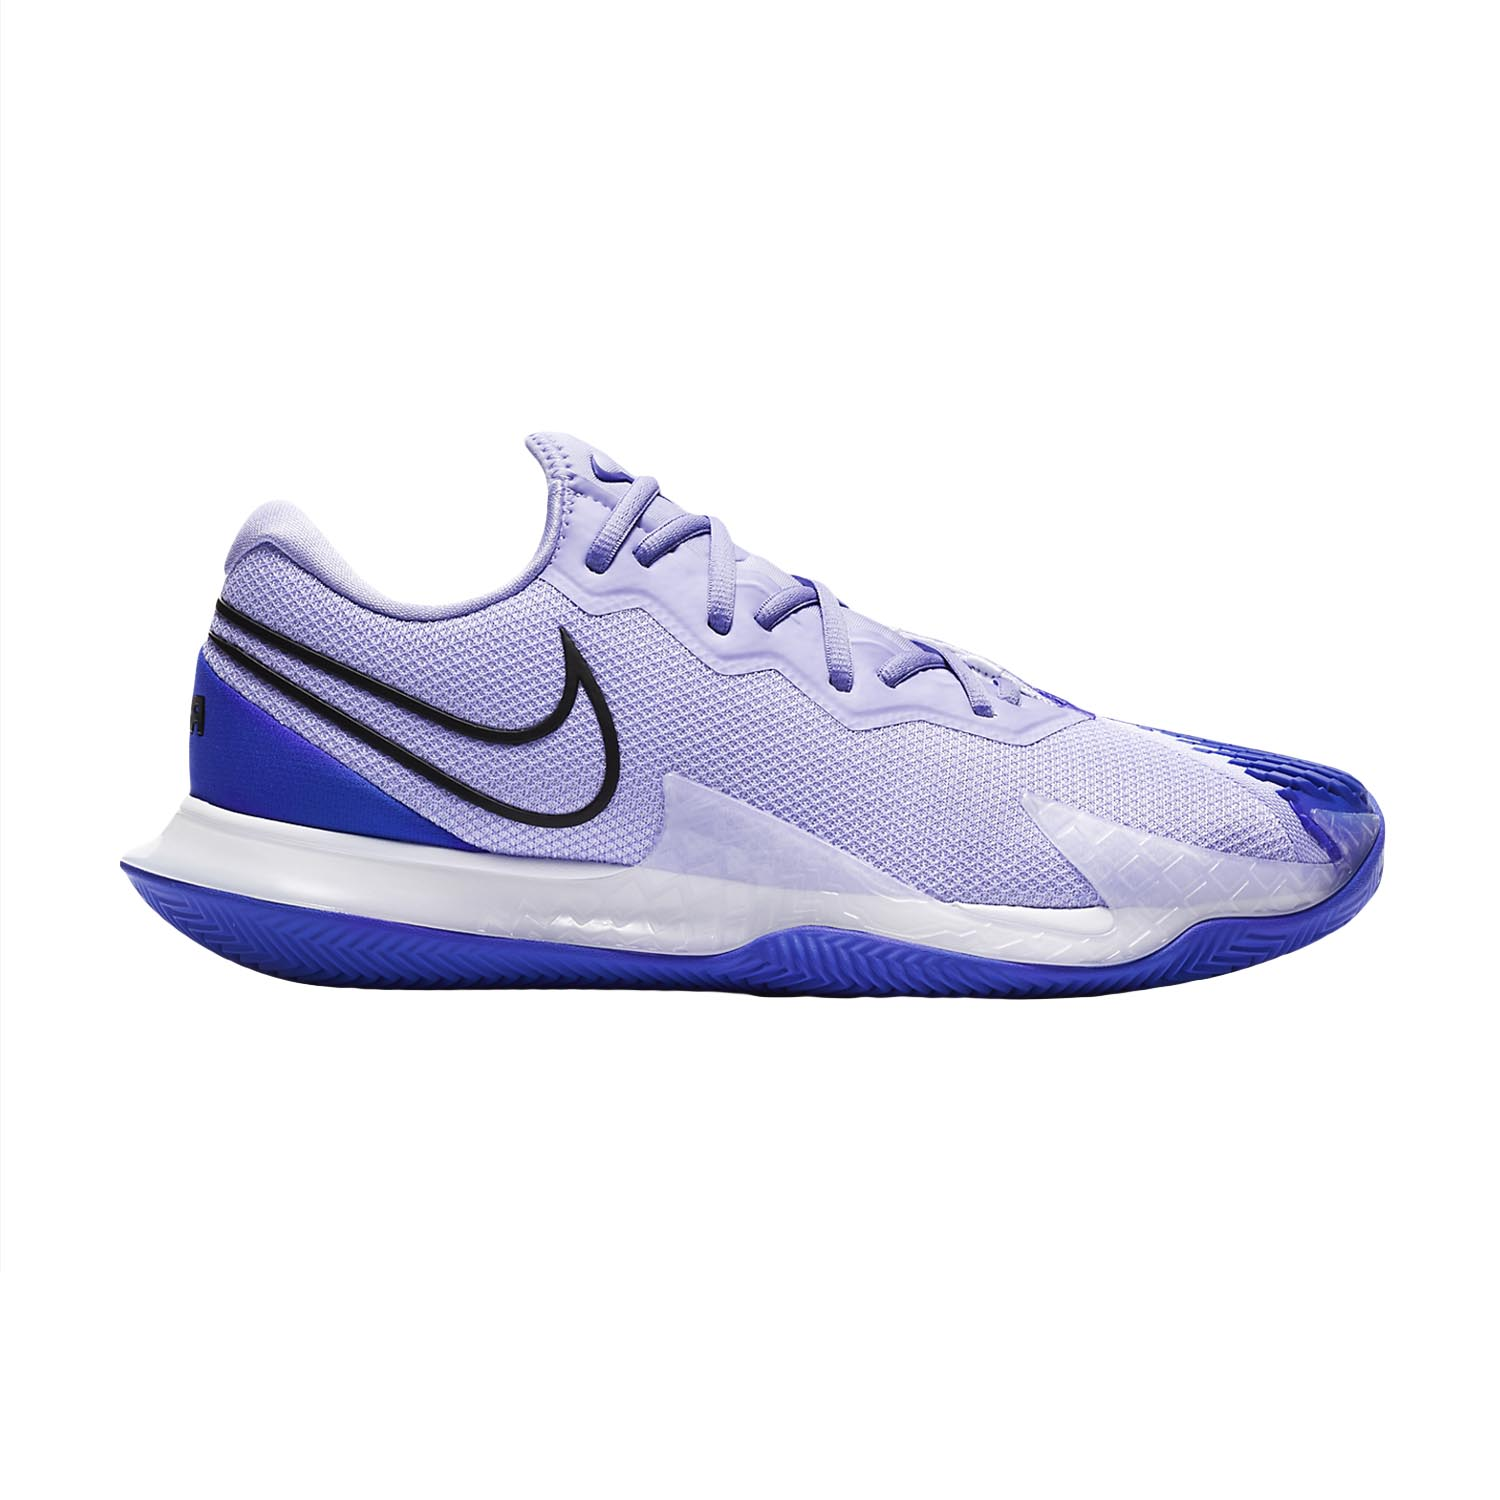 Nike Air Zoom Vapor Cage 4 Clay - Purple Pulse/Black/Persian Violet/White